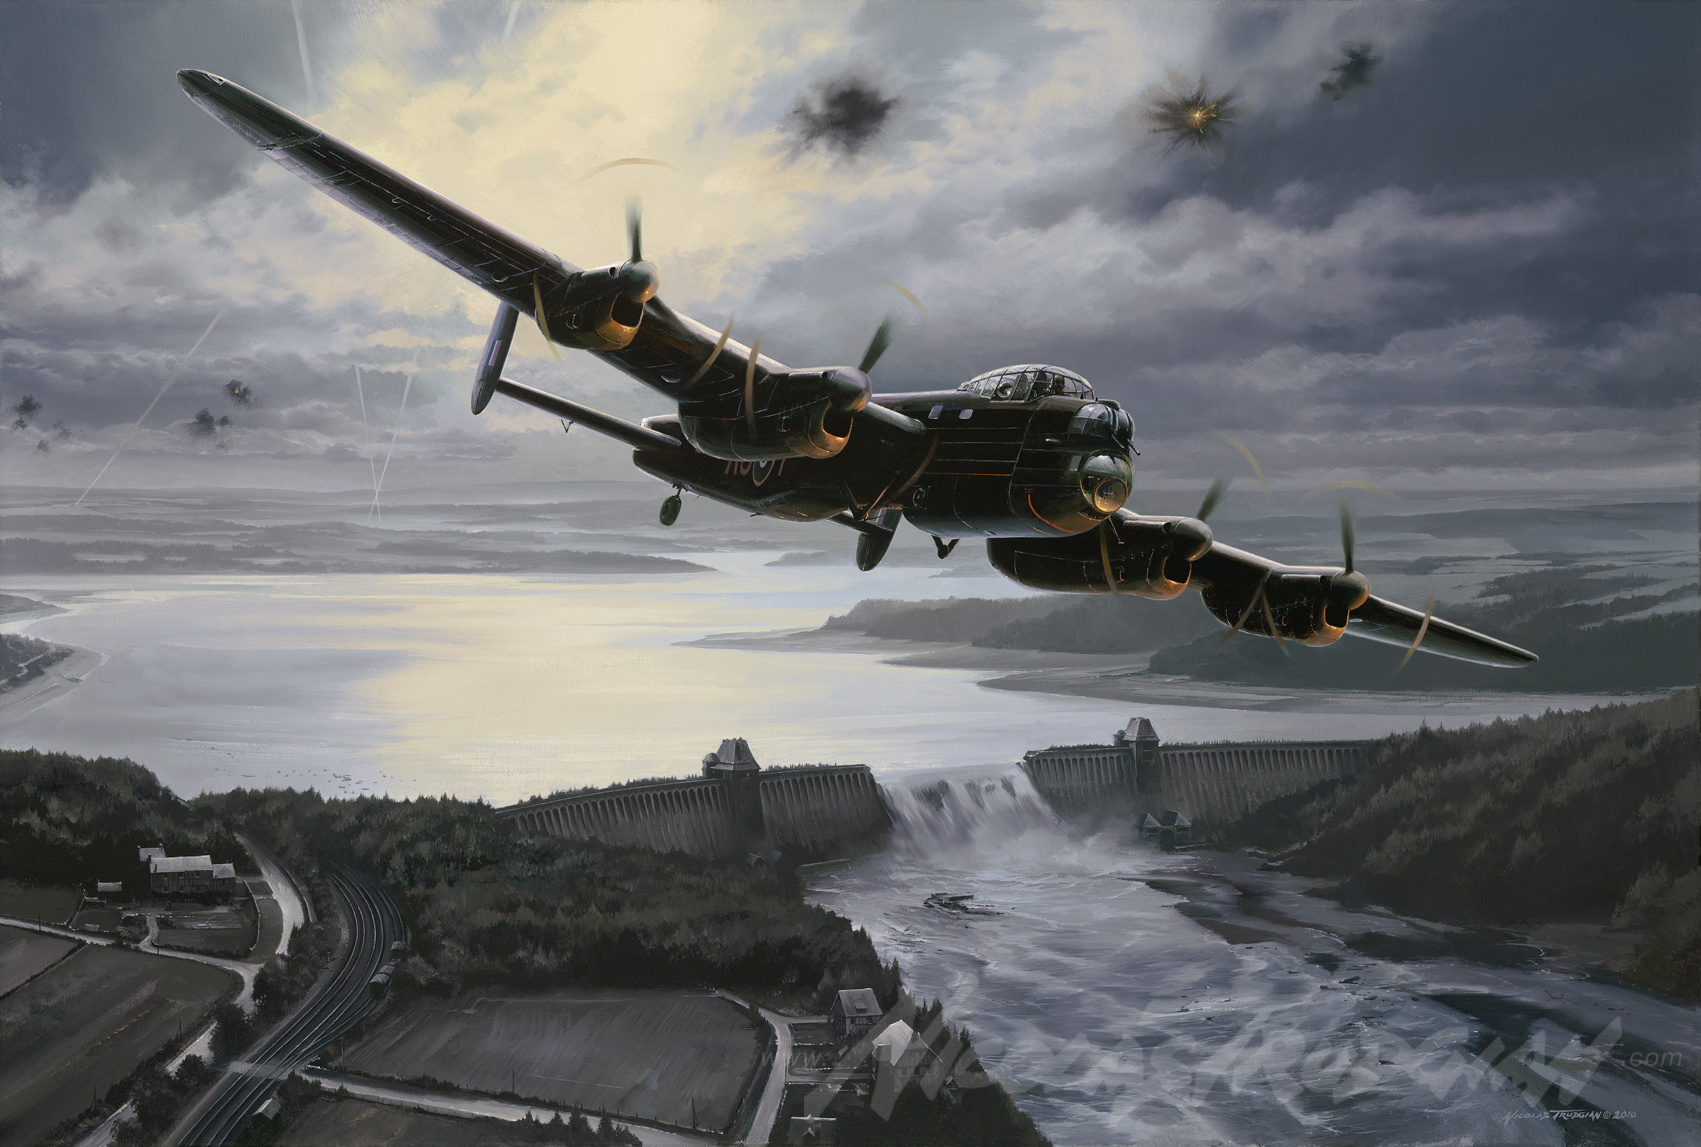 Discover The Dambusters Raid And Its Heroes In 23